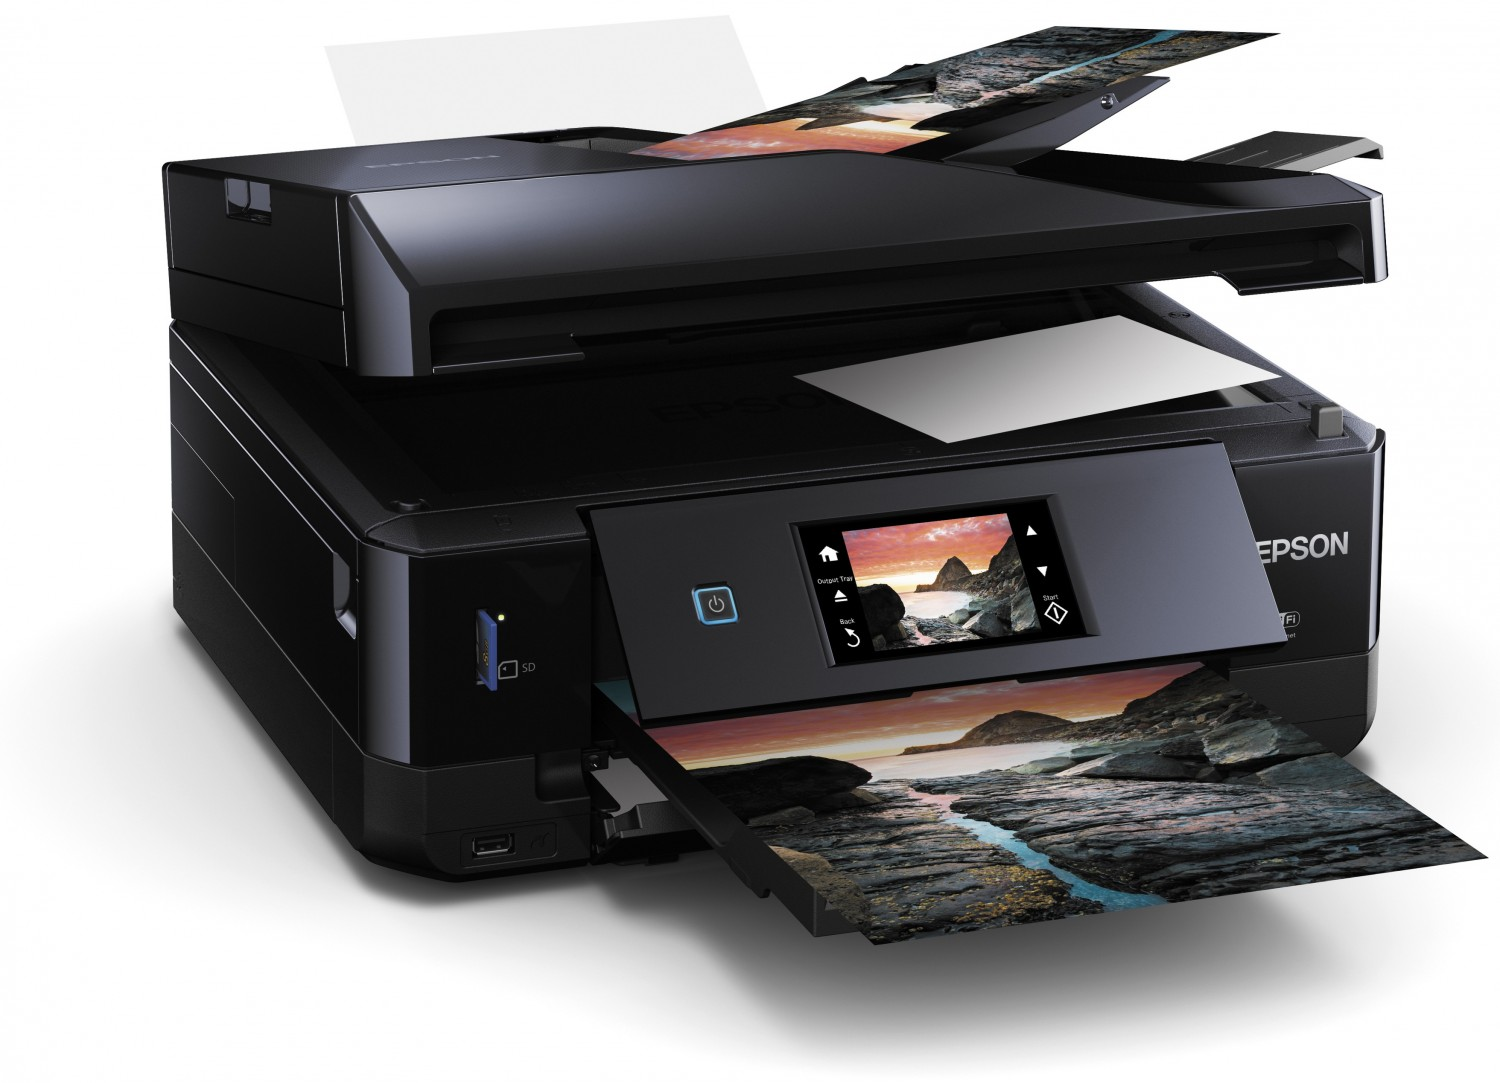 epson Expression Photo XP 860 driver download for window